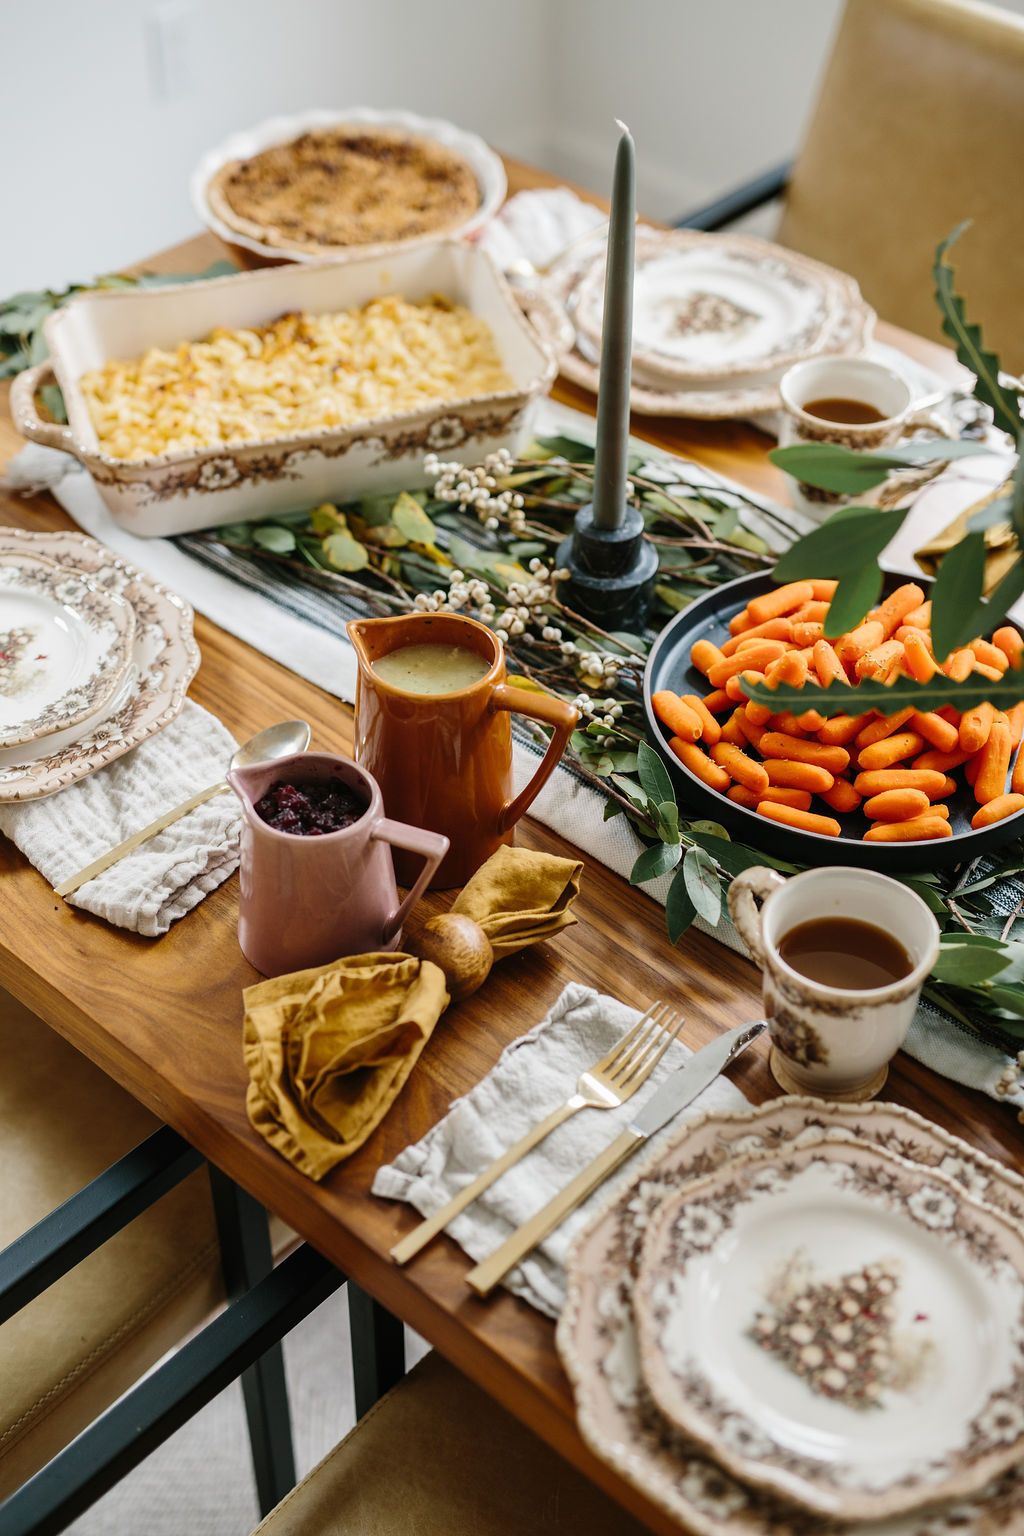 A friendsgiving table set ready for guests